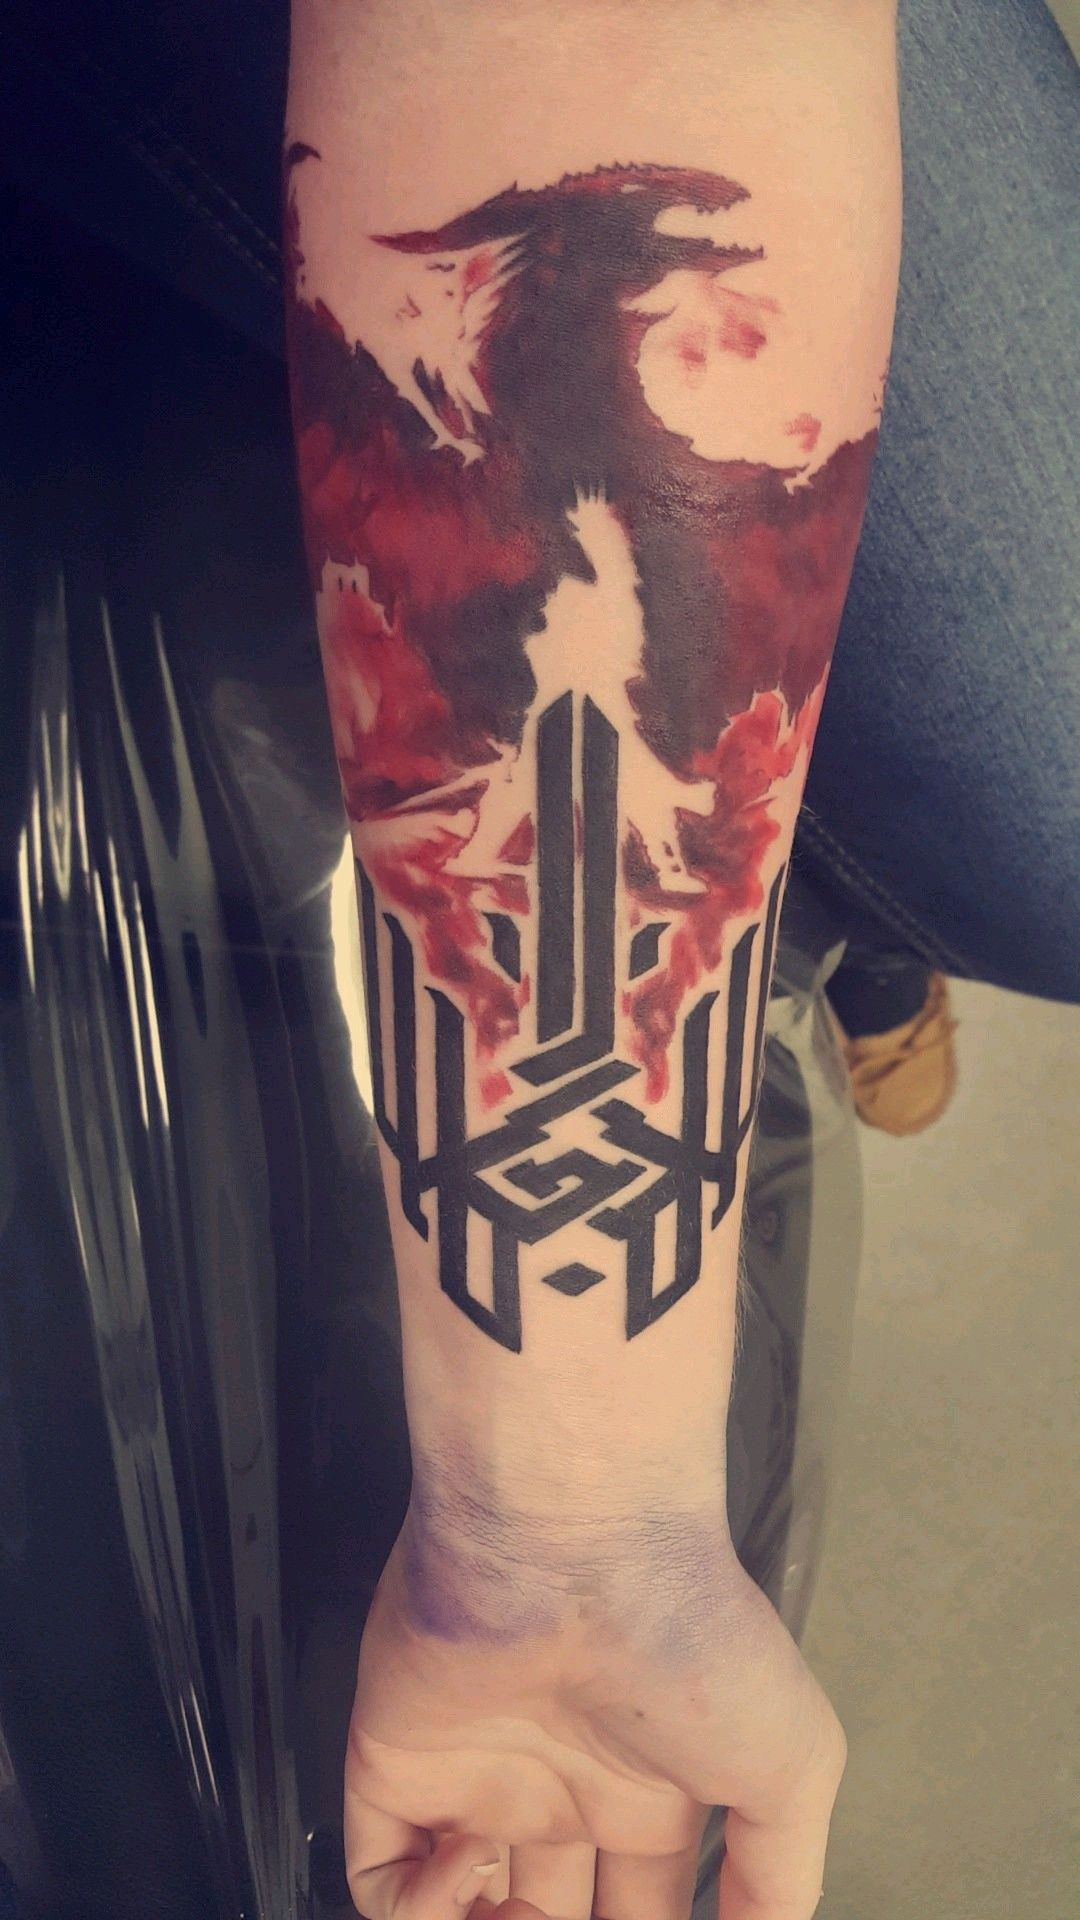 Dragon age tattoo da dragonage dragonage2 dragonageinquisition dragon age tattoo da dragonage dragonage2 dragonageinquisition dragonageorigins dragonagebeginnings tattoo dragonagetattoo personal gumiabroncs Image collections